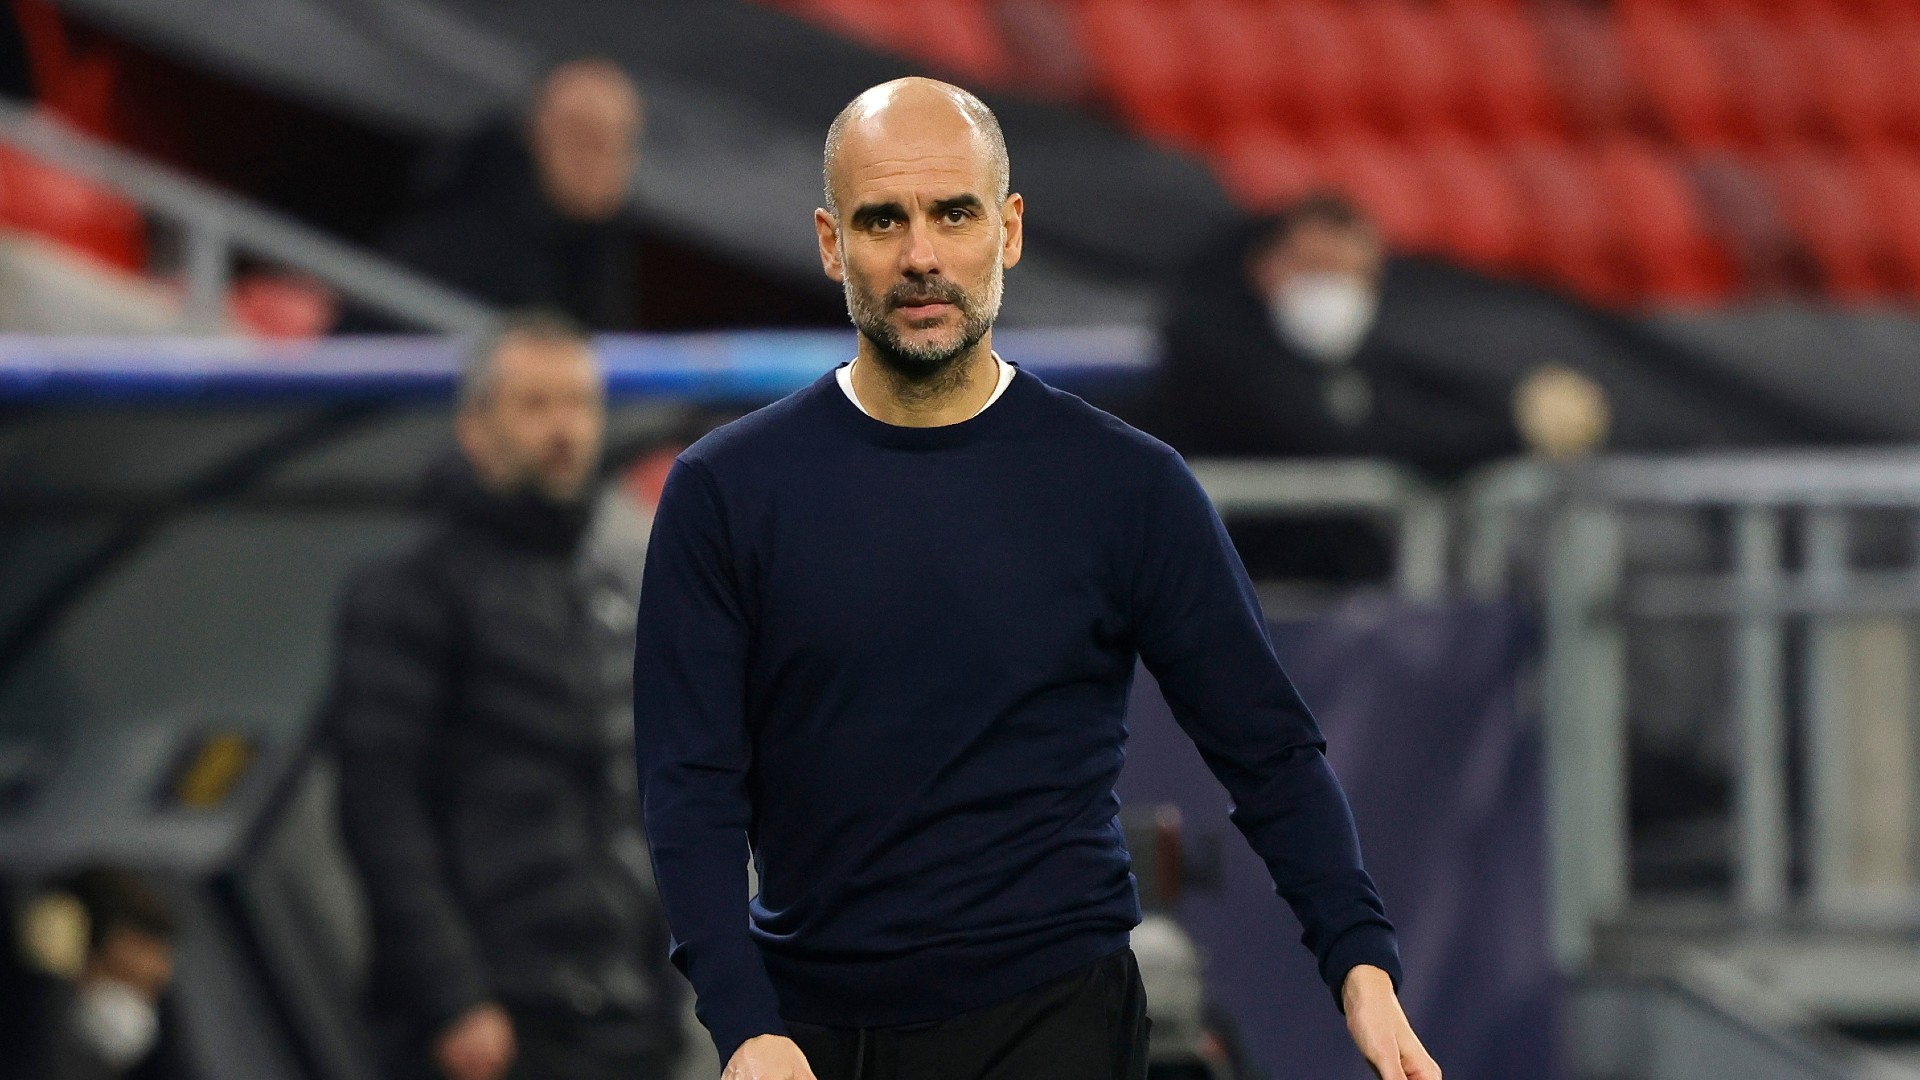 Guardiola expects 'best club in the world' Barca to come back stronger following elections